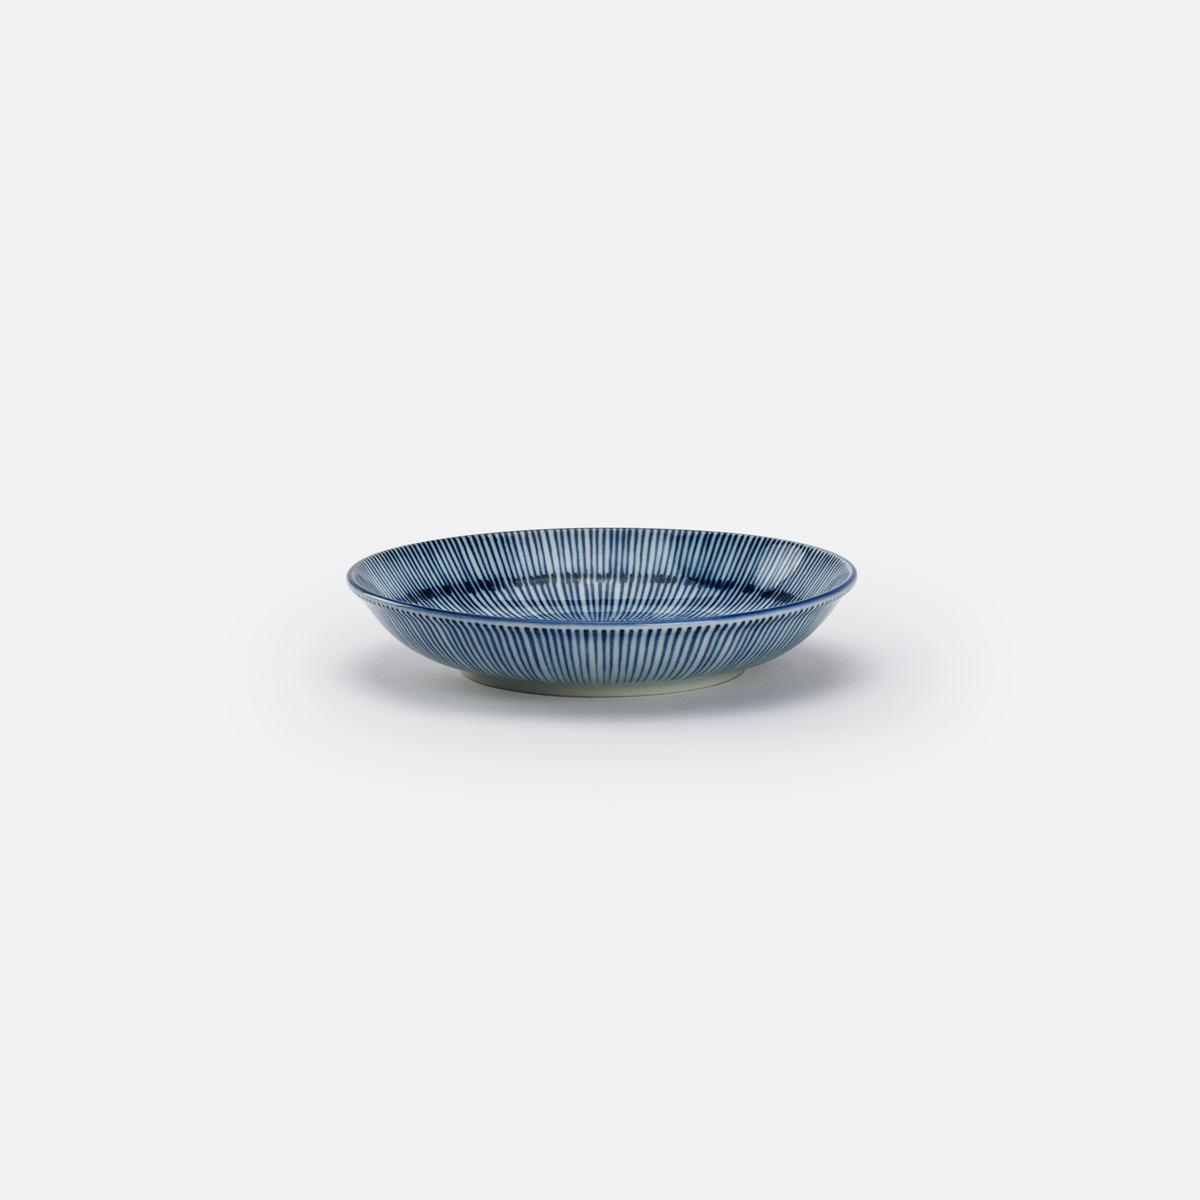 Japanese Plates Bowls Platters Cups Mugs - Made in Japan. Japanese Plates Bowls Platters Cups Mugs - Made in Japan  sc 1 st  Nendo & Tokusa - Side Plate - Cerulean - 16.5x16.5x3.5cm - Nendo | Japanese ...